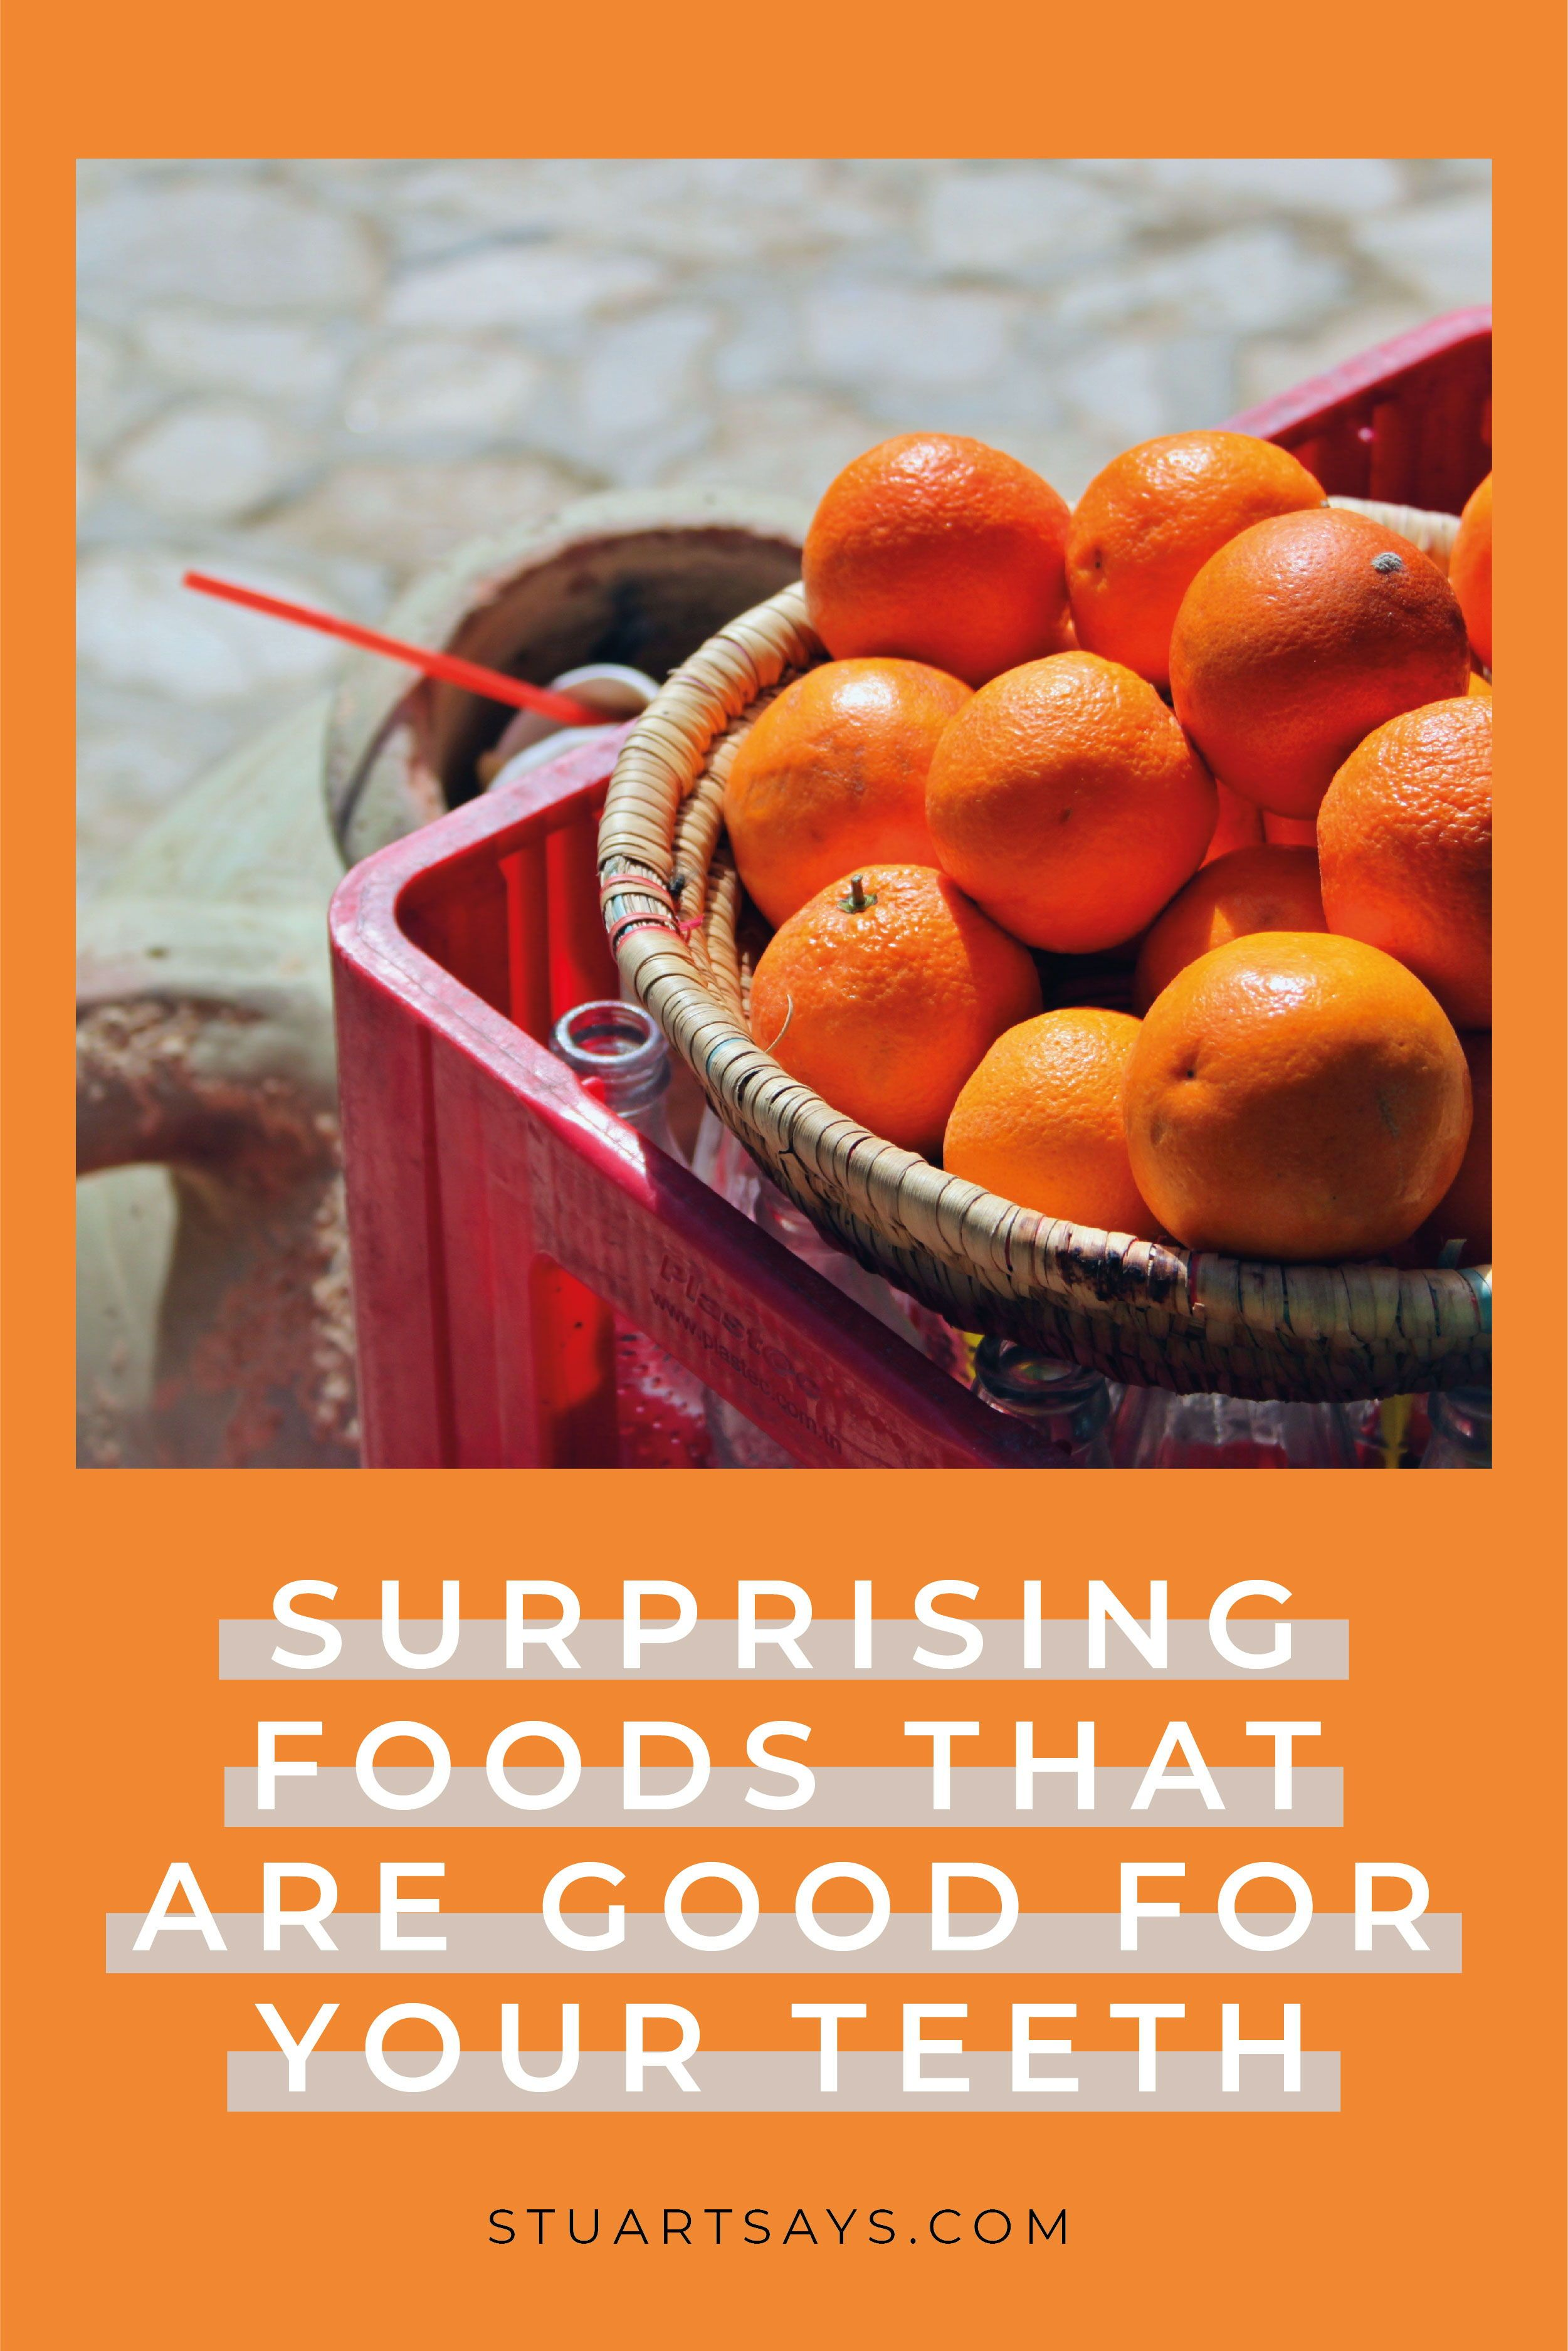 Surprising Foods That Are Good For Your Teeth